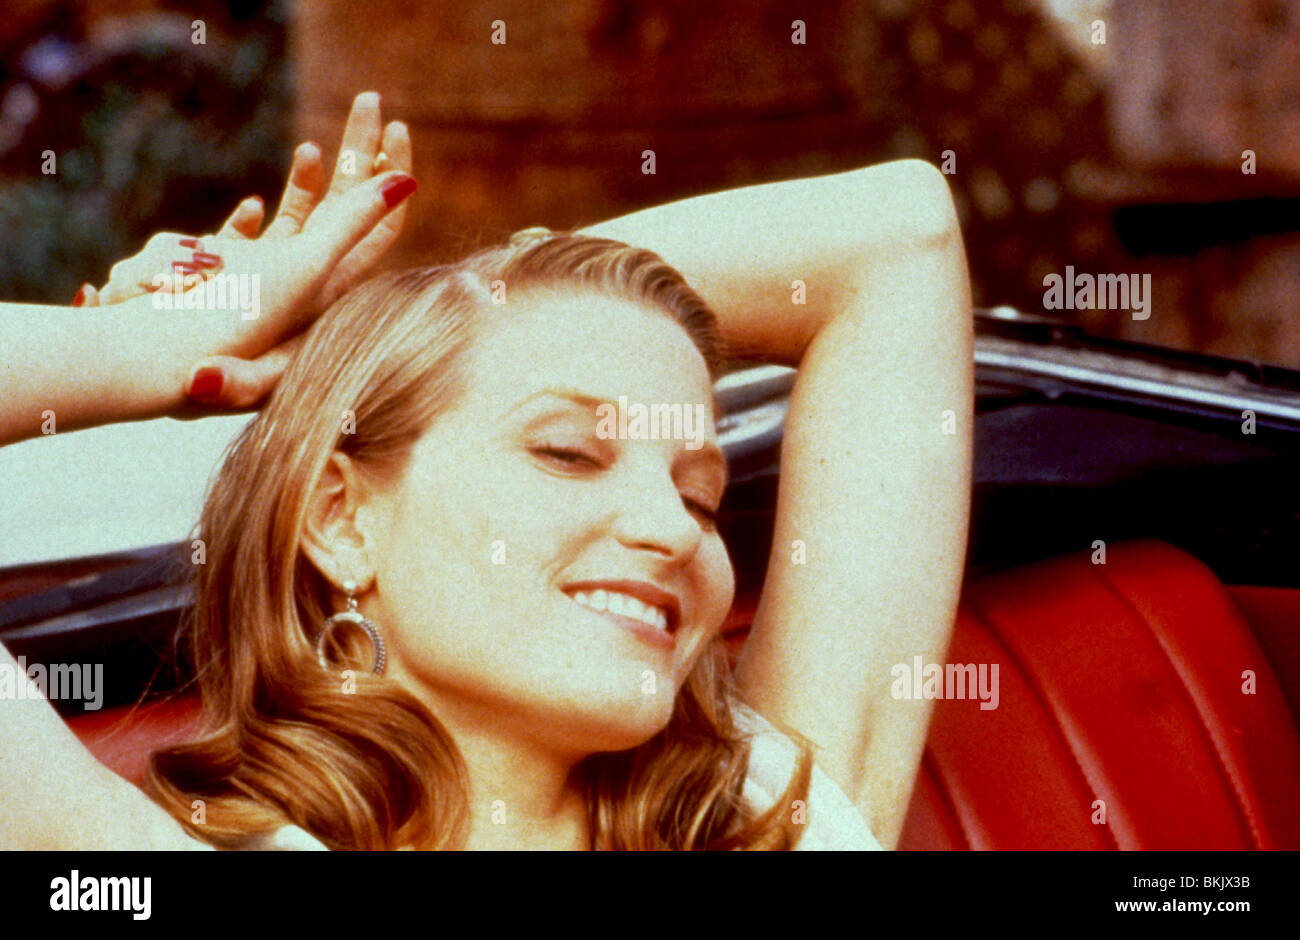 bridget-fonda-mouth